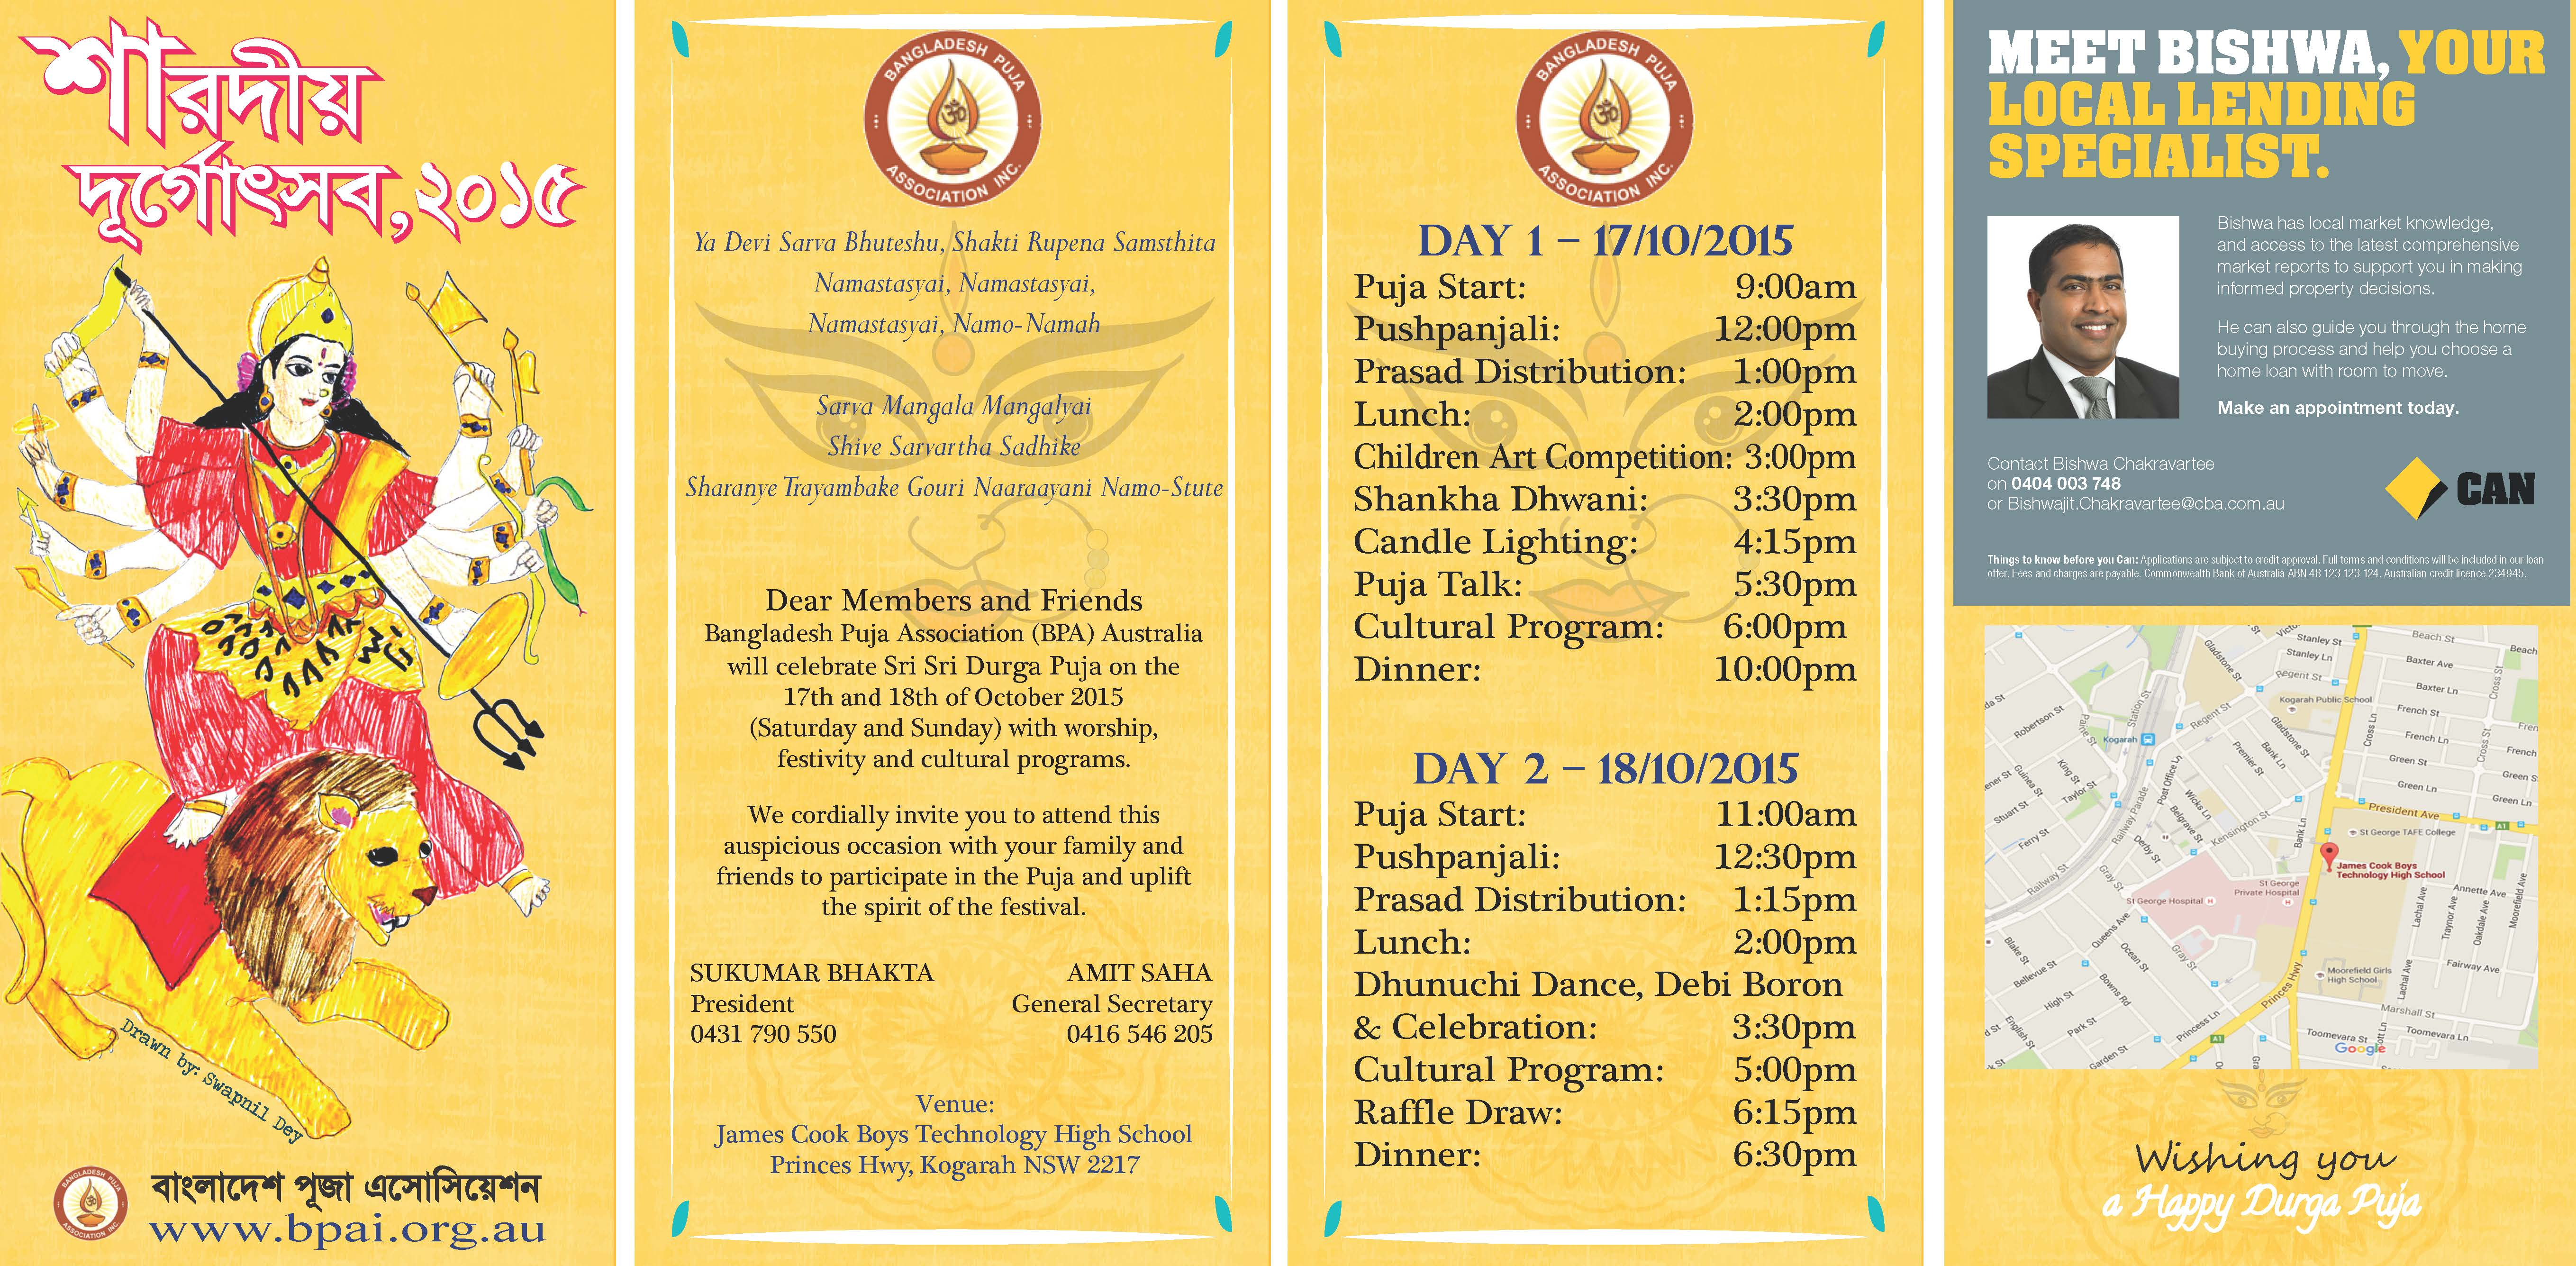 Download Durga Puja 2015 invitation card from here | Bangladesh Puja Association Inc